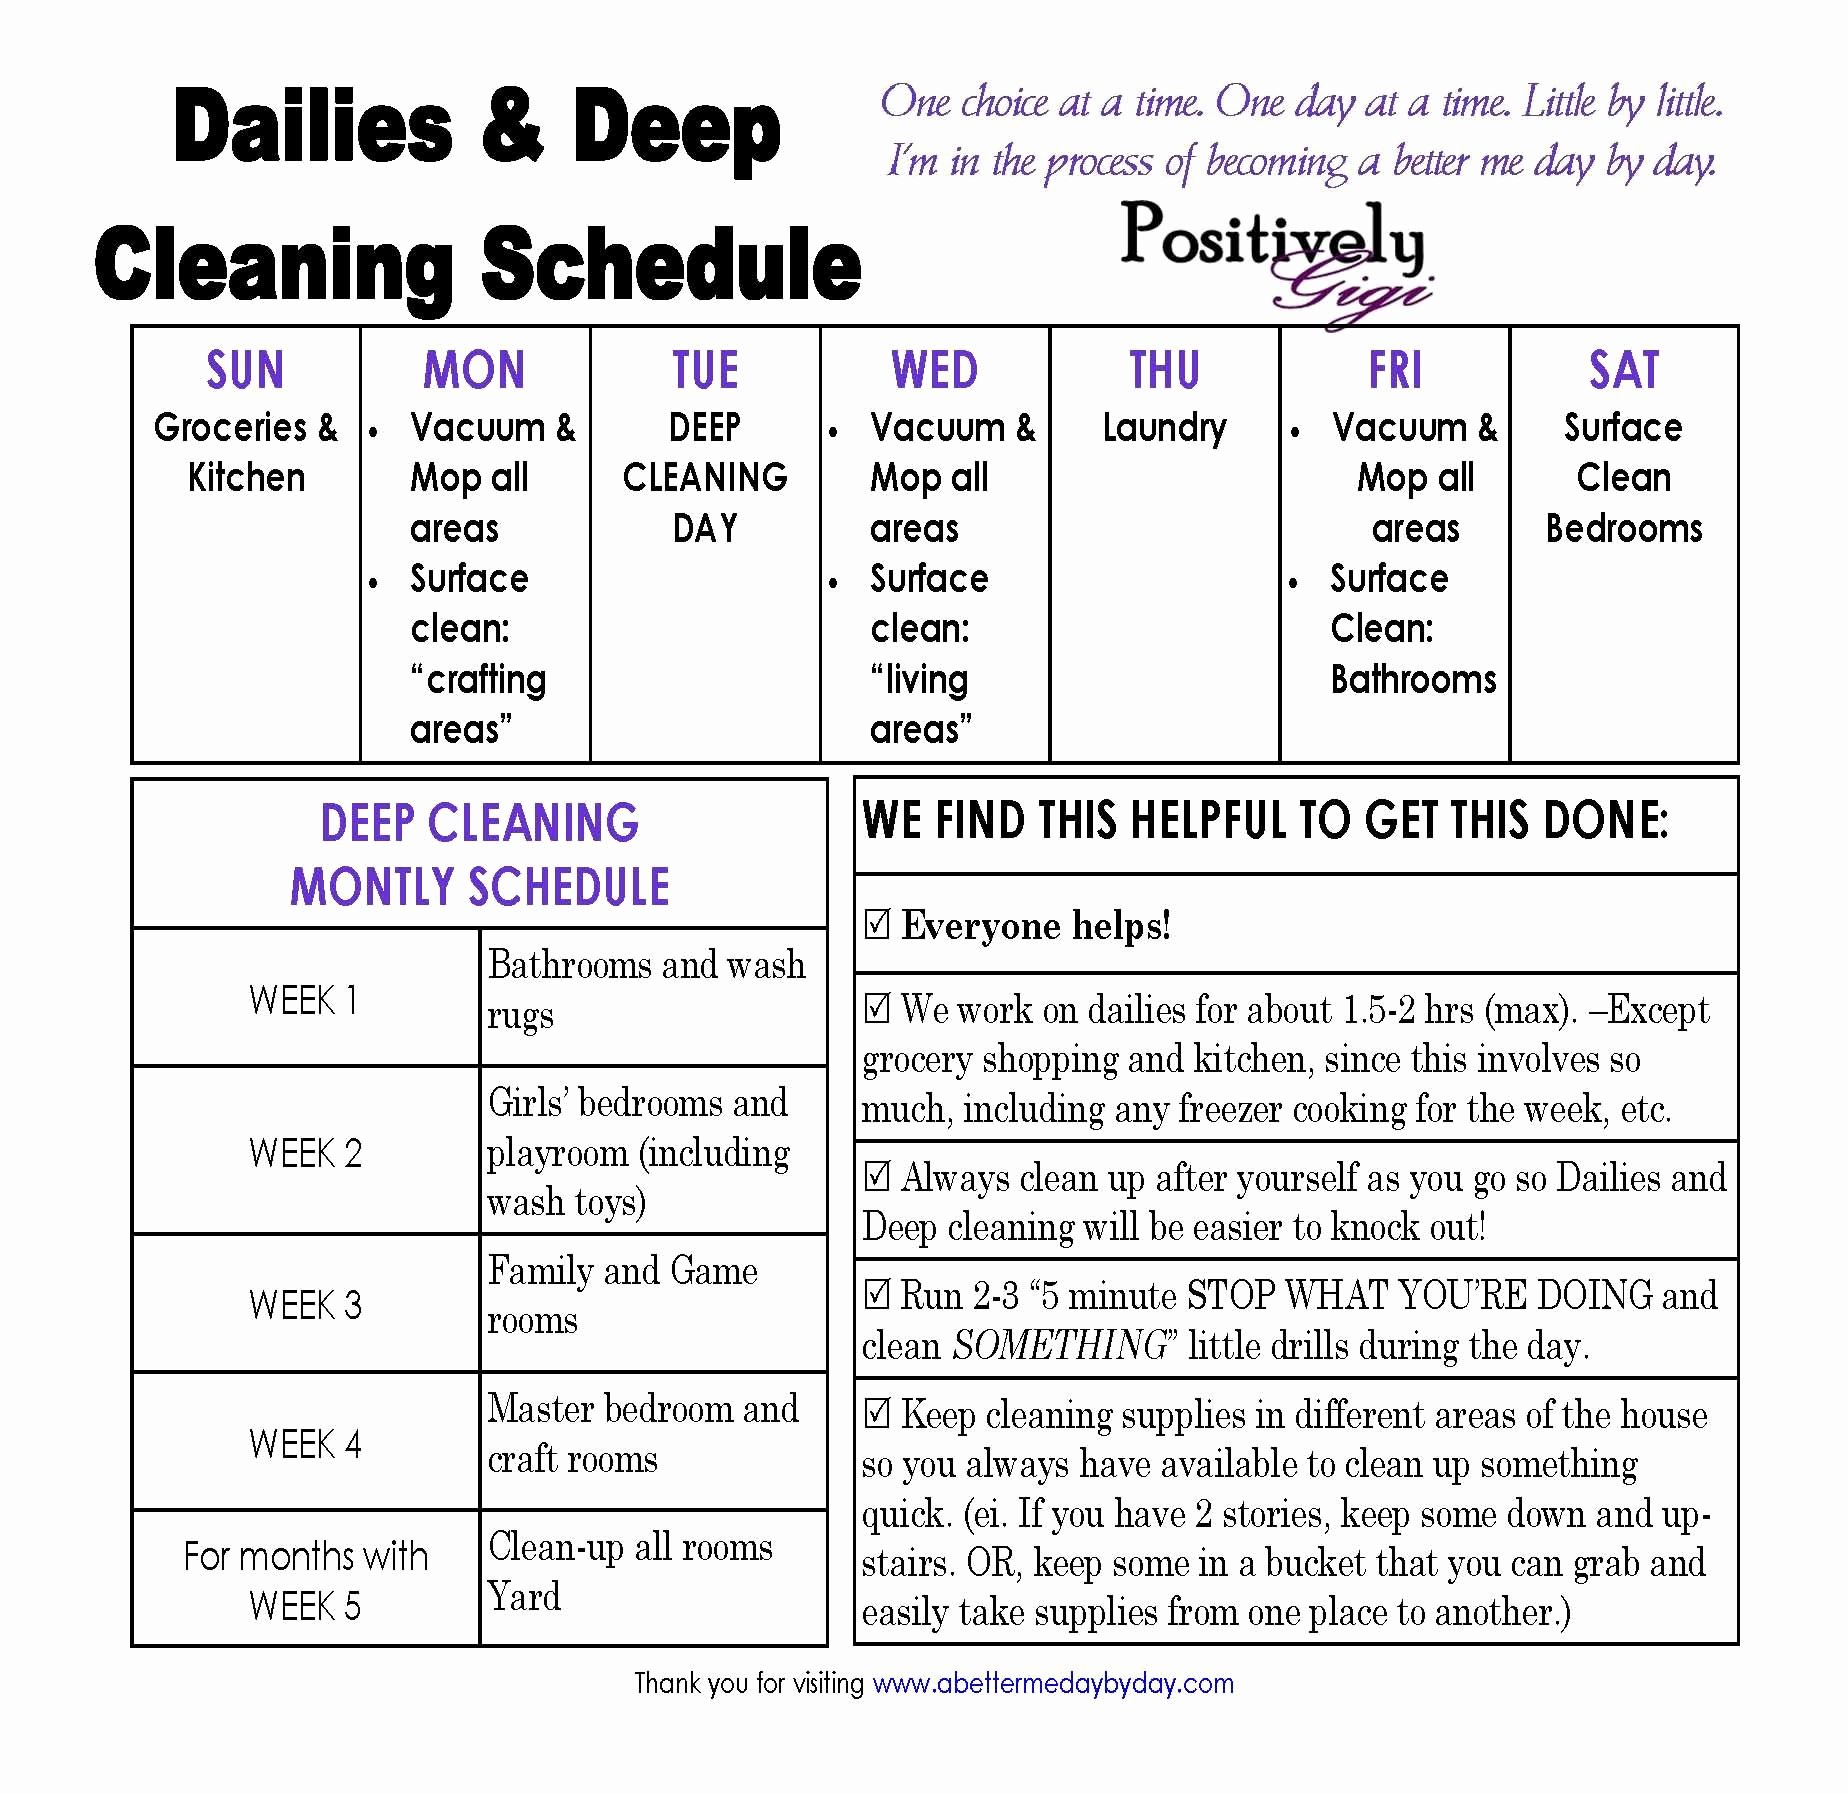 Daycare Cleaning Checklist Templates Lovely Housework Schedule Google Search